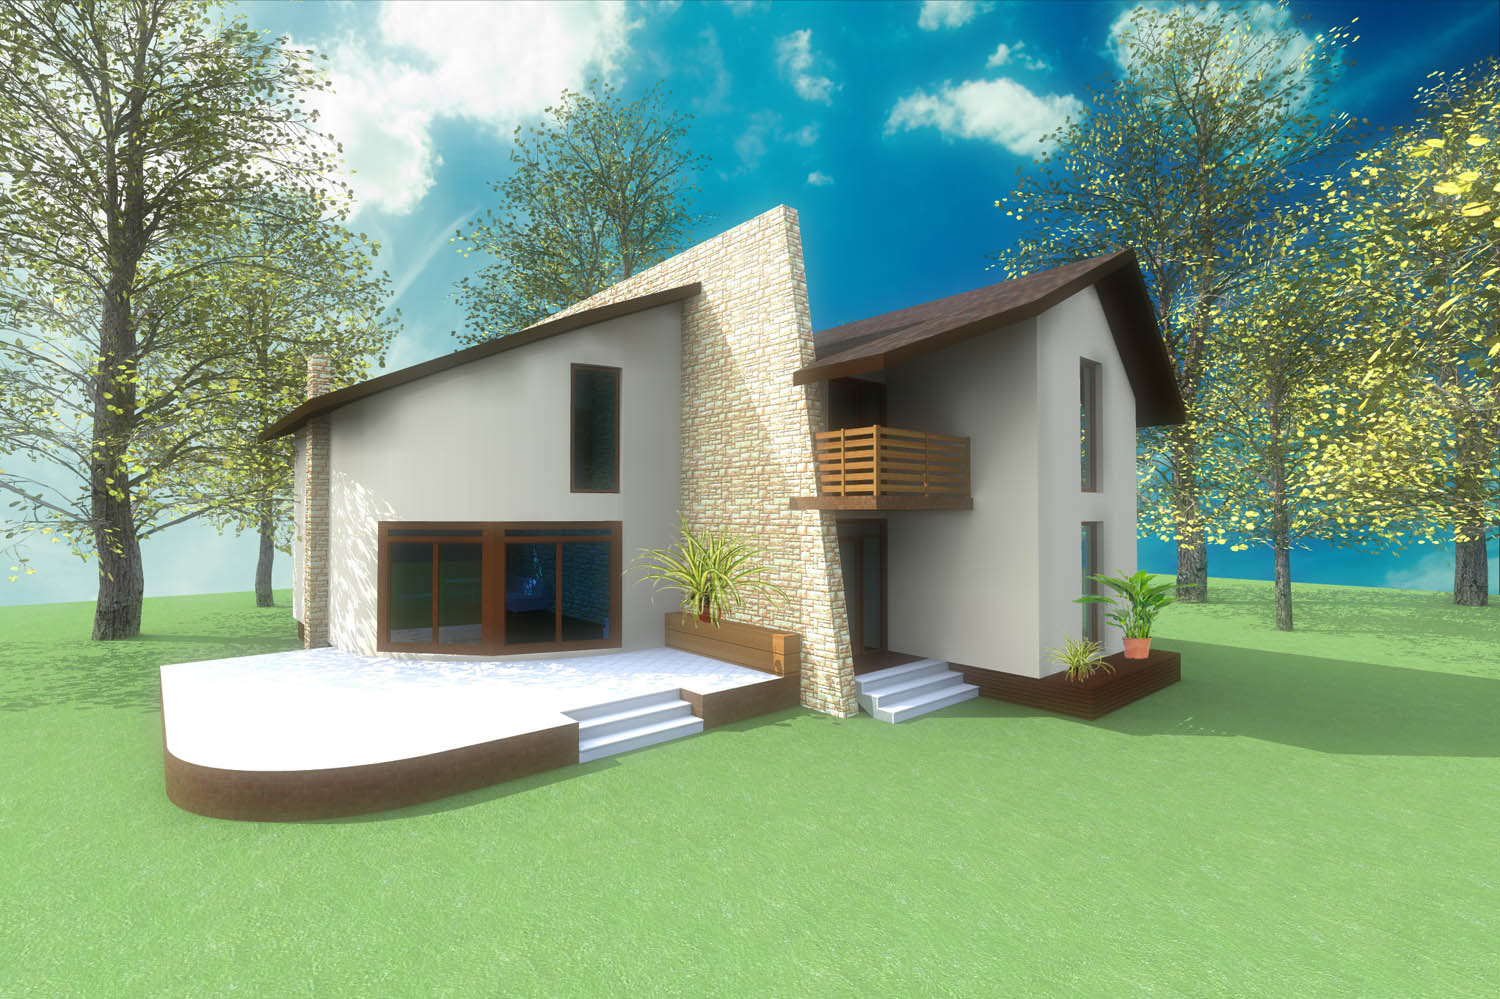 Holiday home house design concept architecture Artlantis rendering